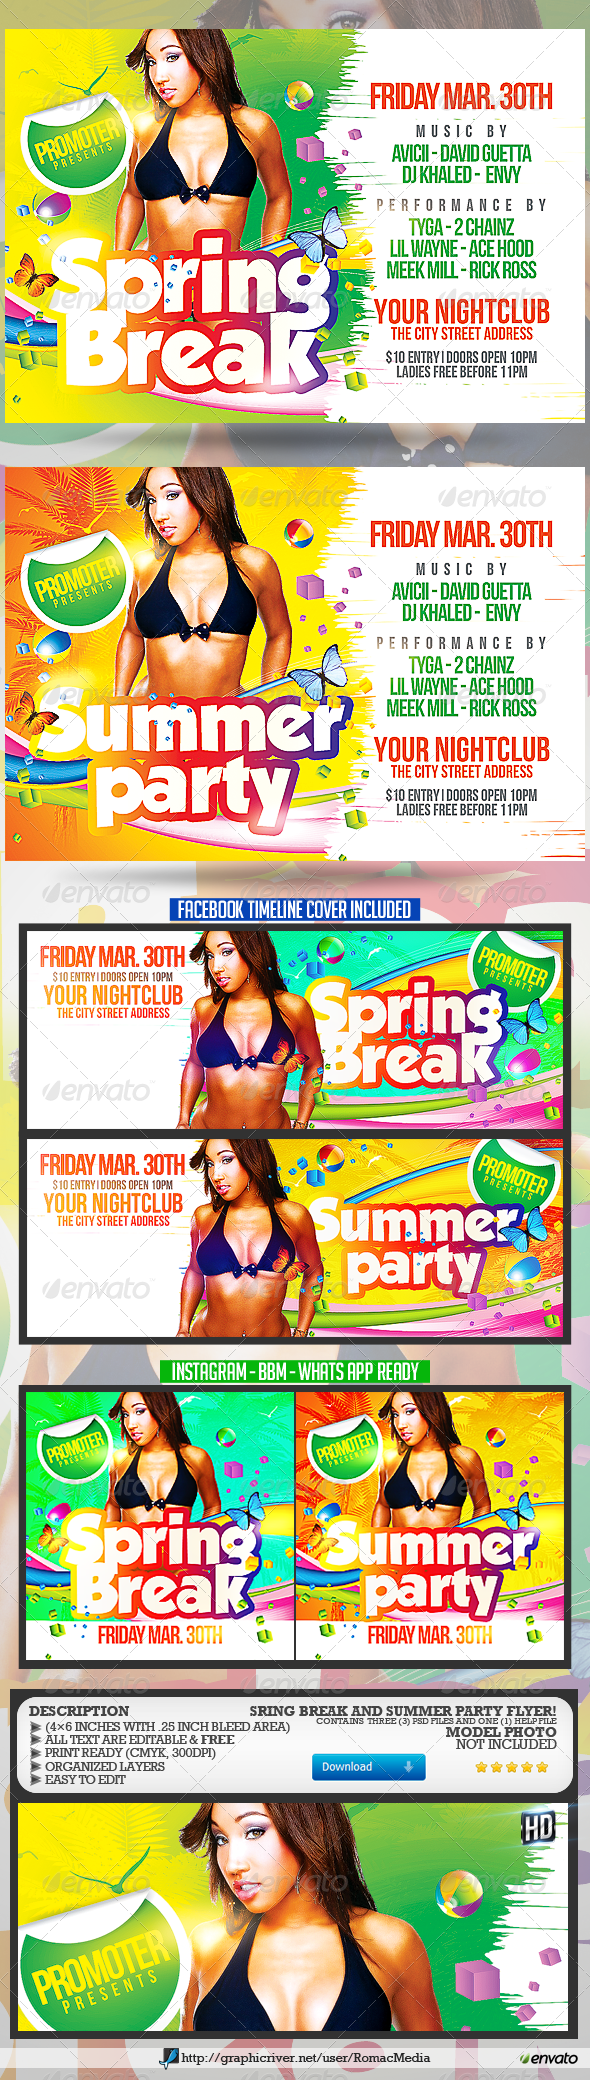 Spring Break and Summer Party Flyer - Clubs & Parties Events